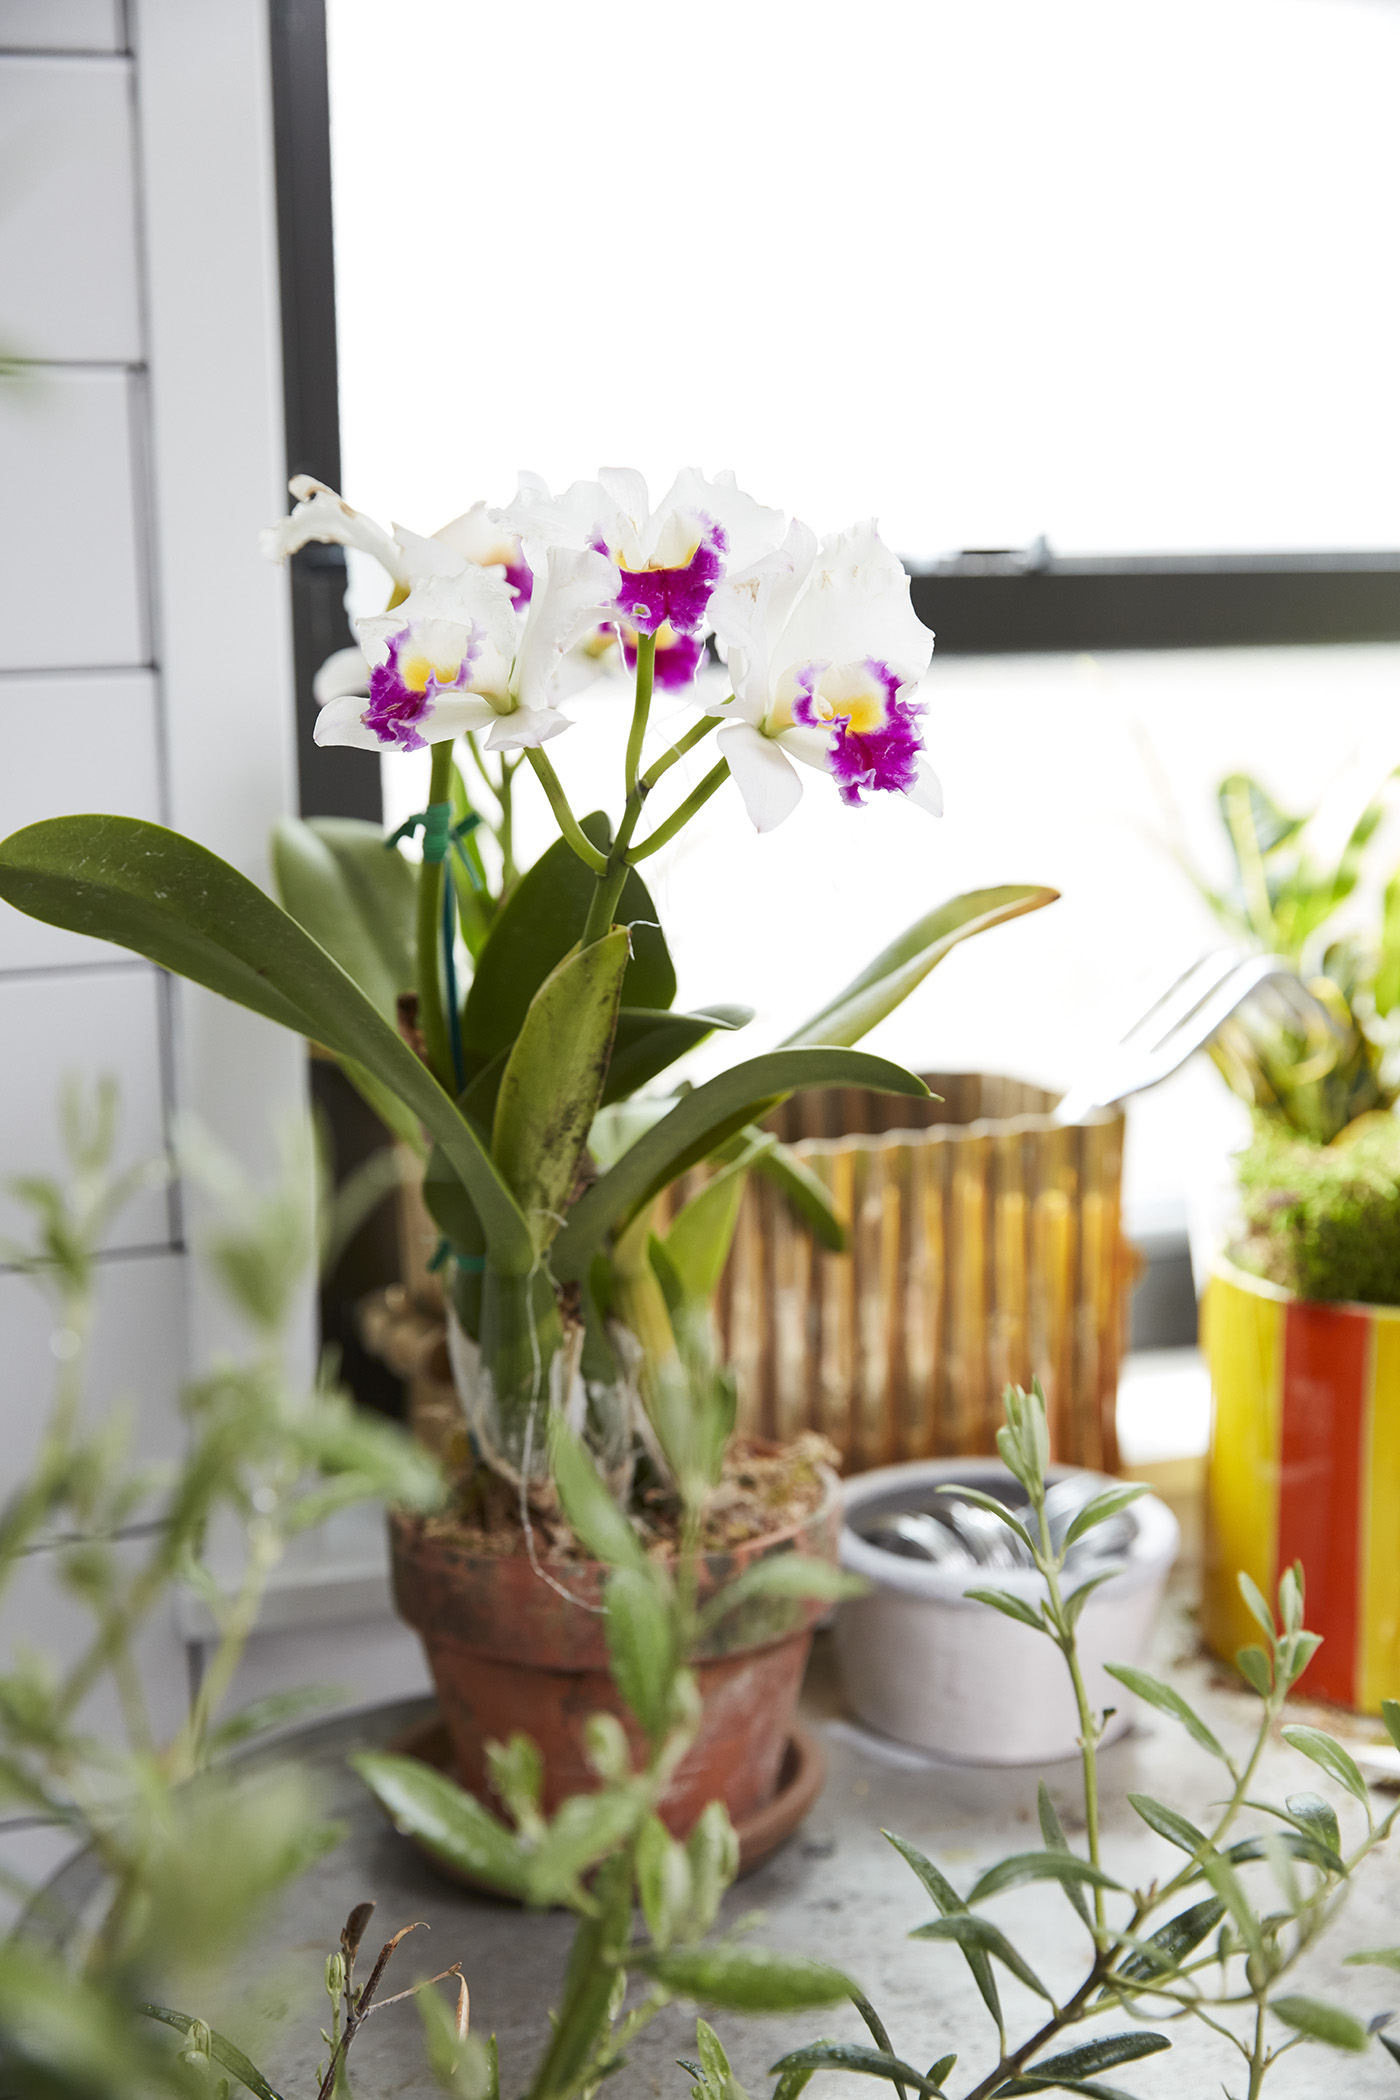 How Do I Repot My Orchid? Here's What to Know | Better ...